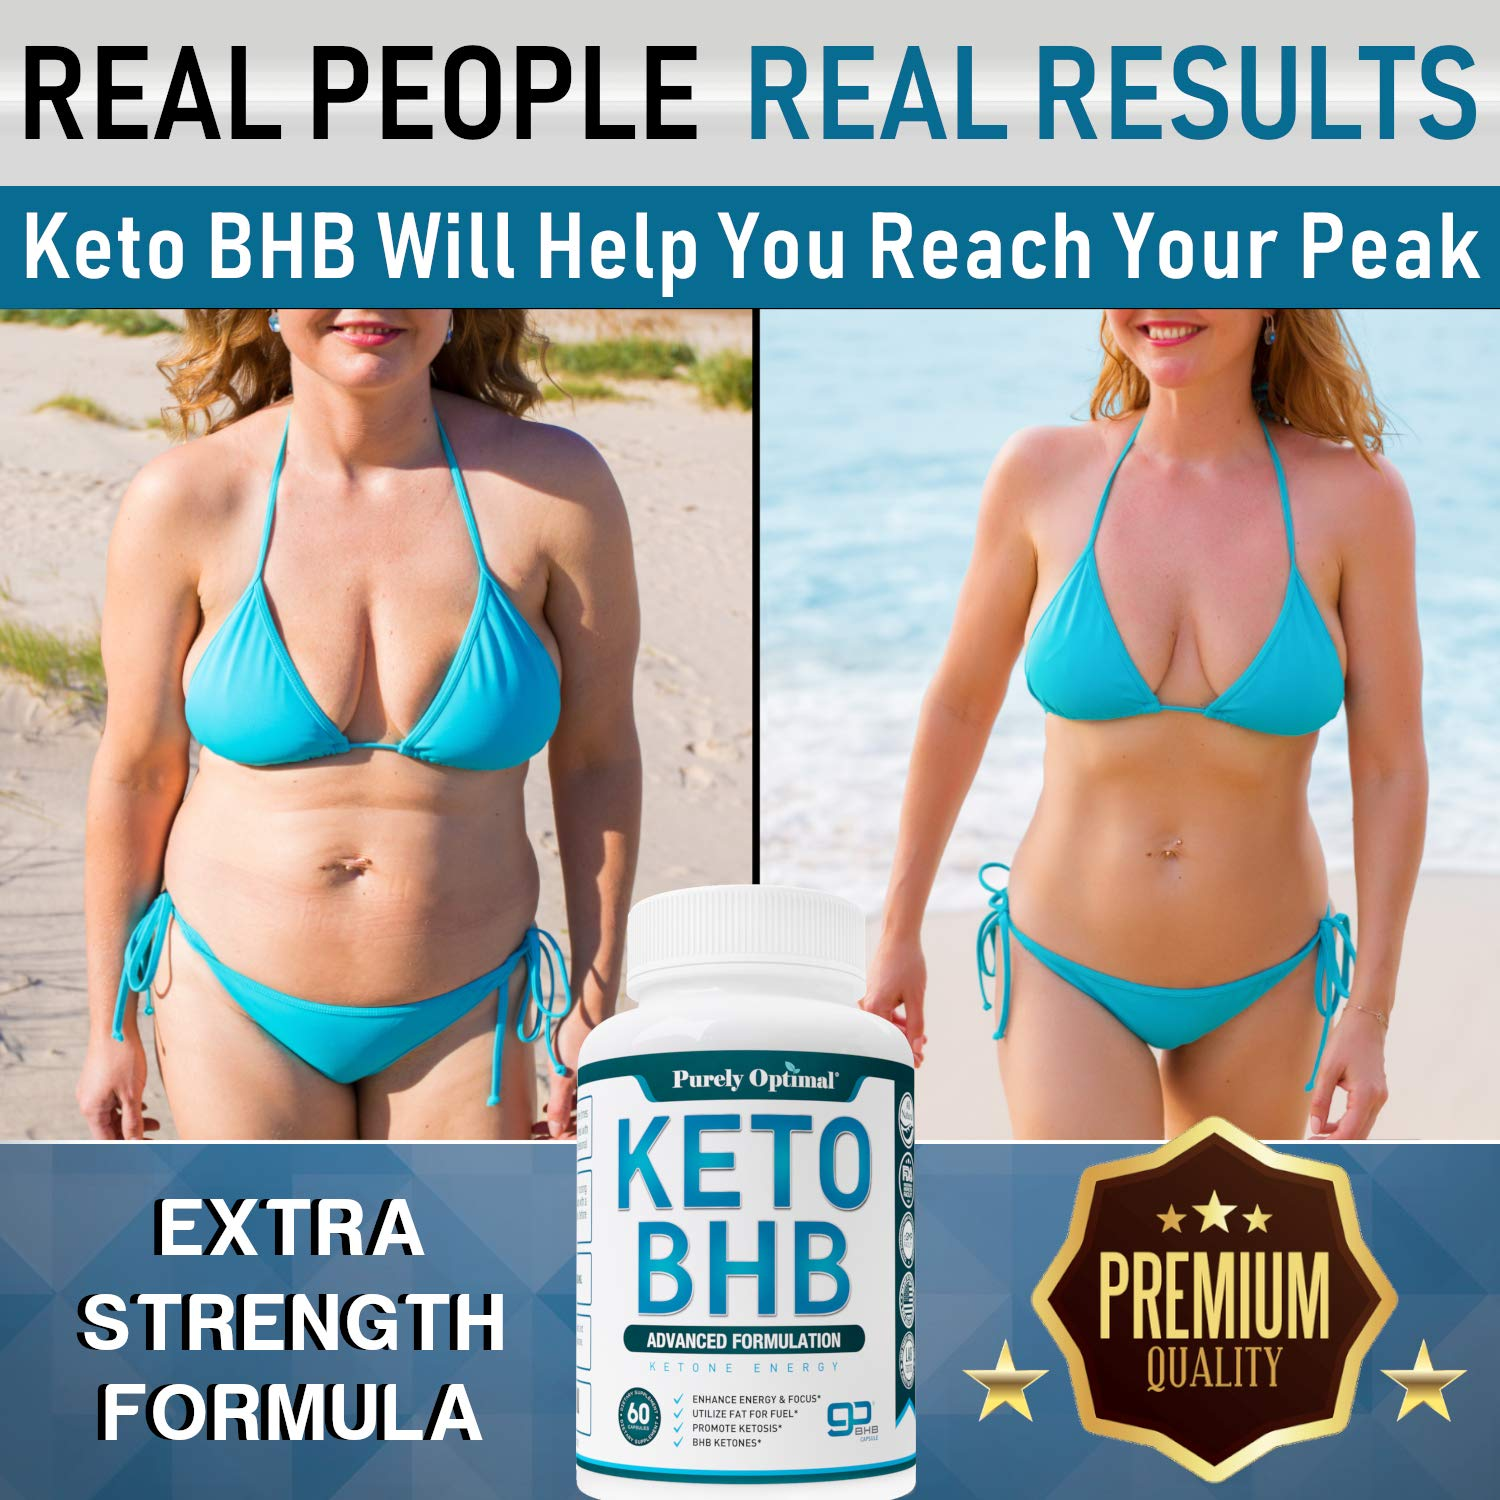 Premium Keto Diet Pills - Utilize Fat for Energy with Ketosis - Boost Energy & Focus, Manage Cravings, Support Metabolism - Keto BHB Supplement for Women and Men - 30 Day Supply by PURELY OPTIMAL (Image #4)